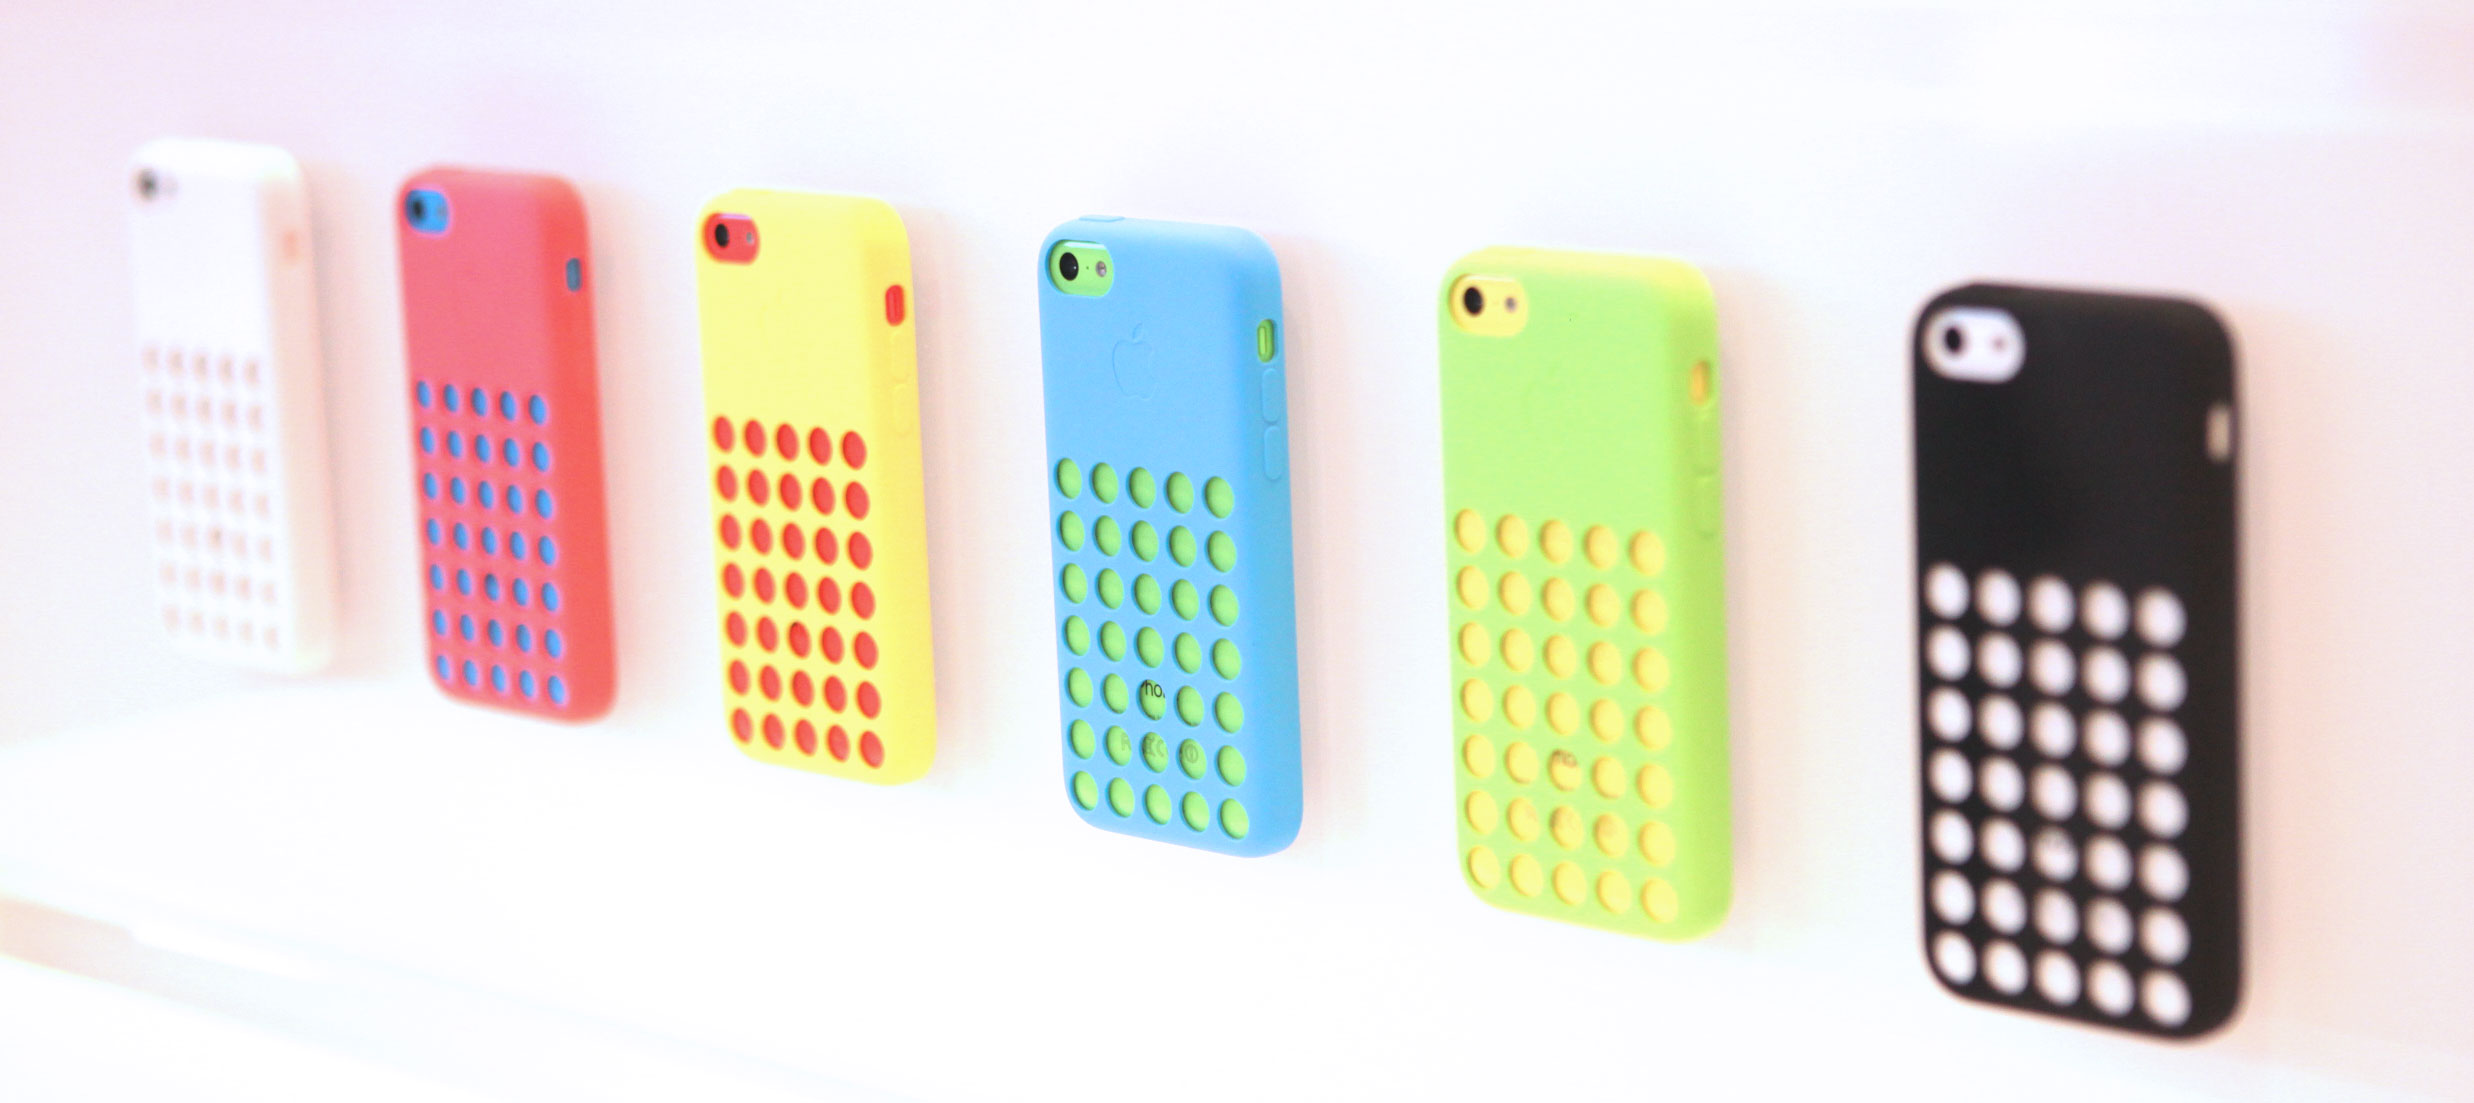 iPhone 5C cases, shown on display at the Apple iPhone launch event in Cupertino, Calif.